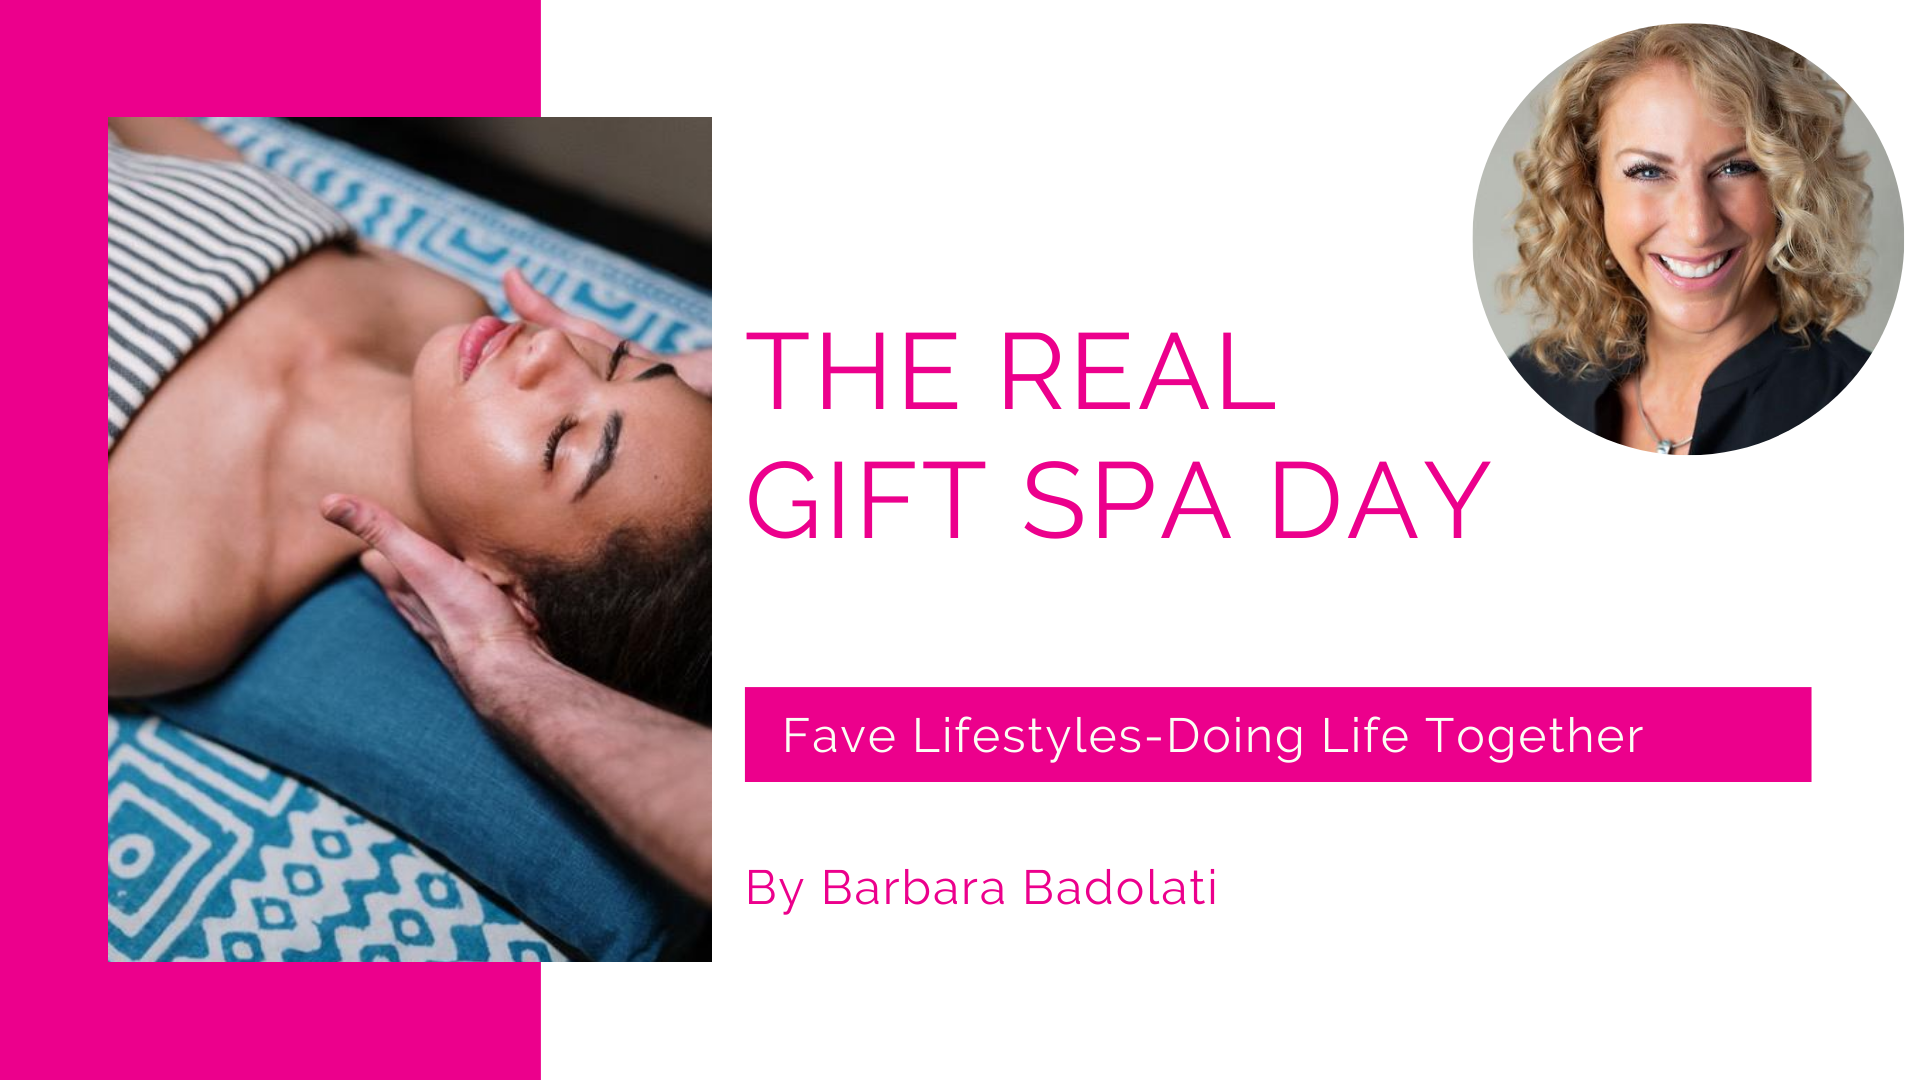 The Real Gift Spa Day